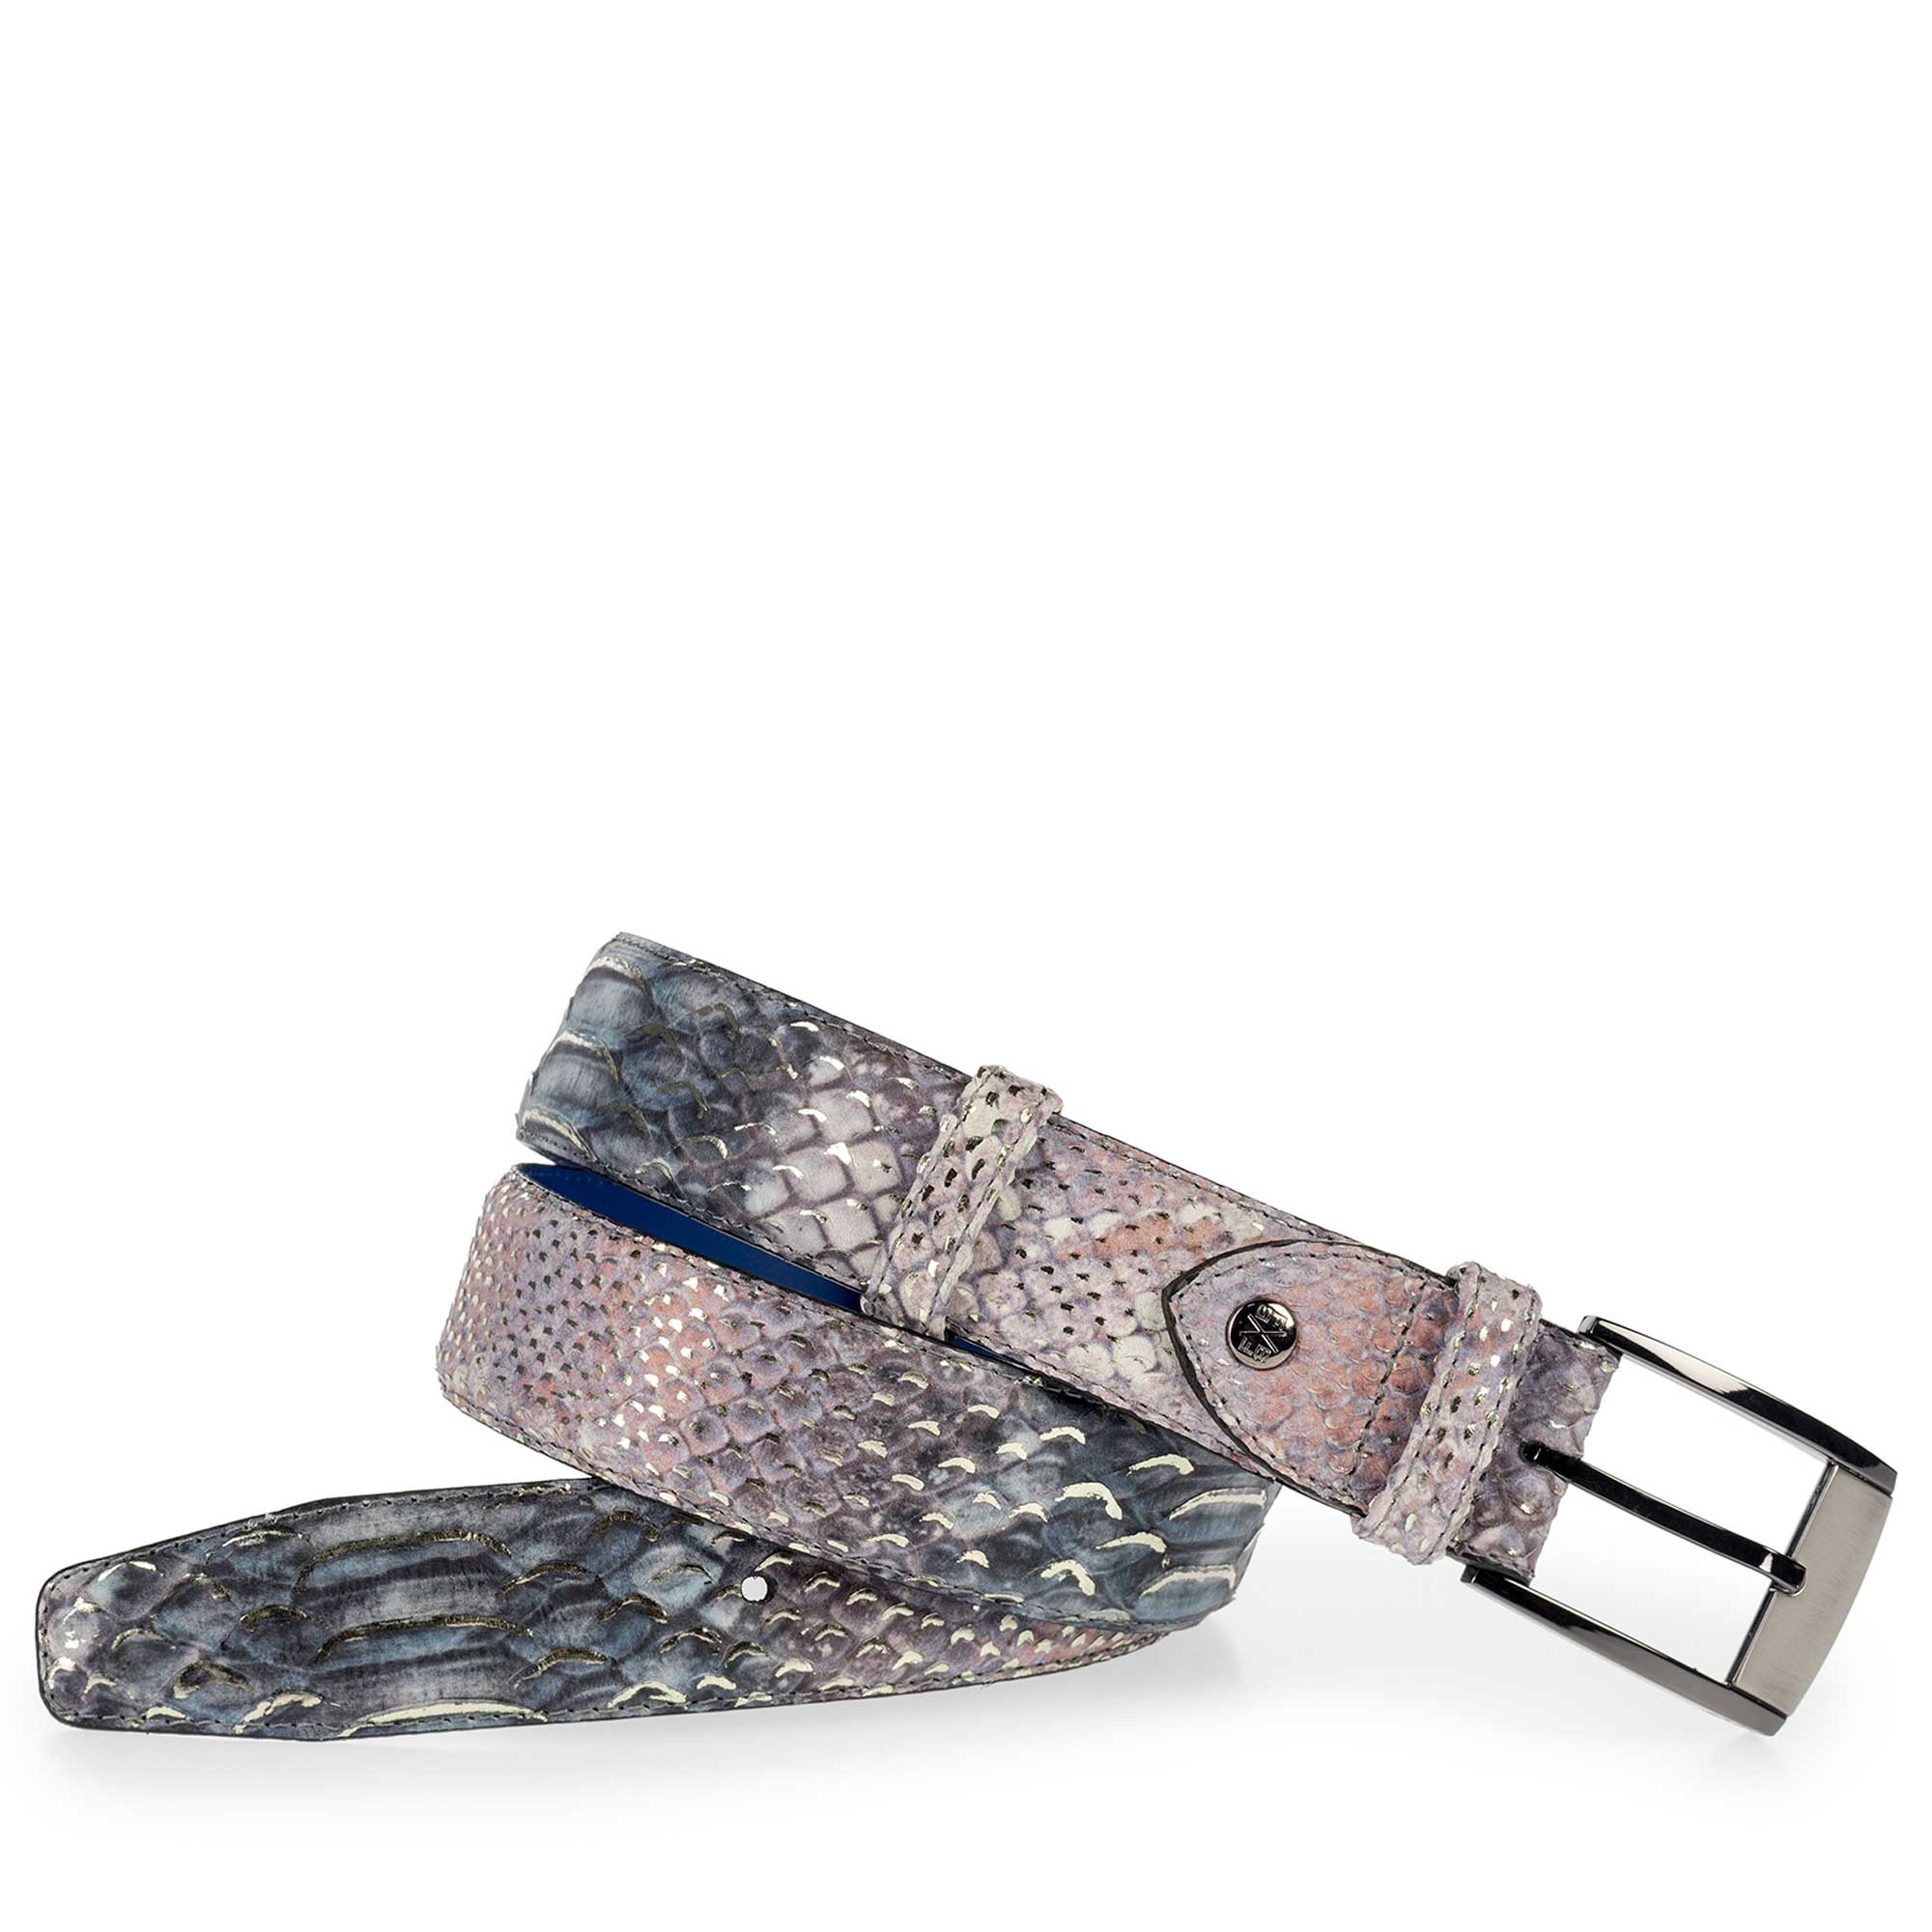 75180/38 - Premium blue leather belt with a snake print